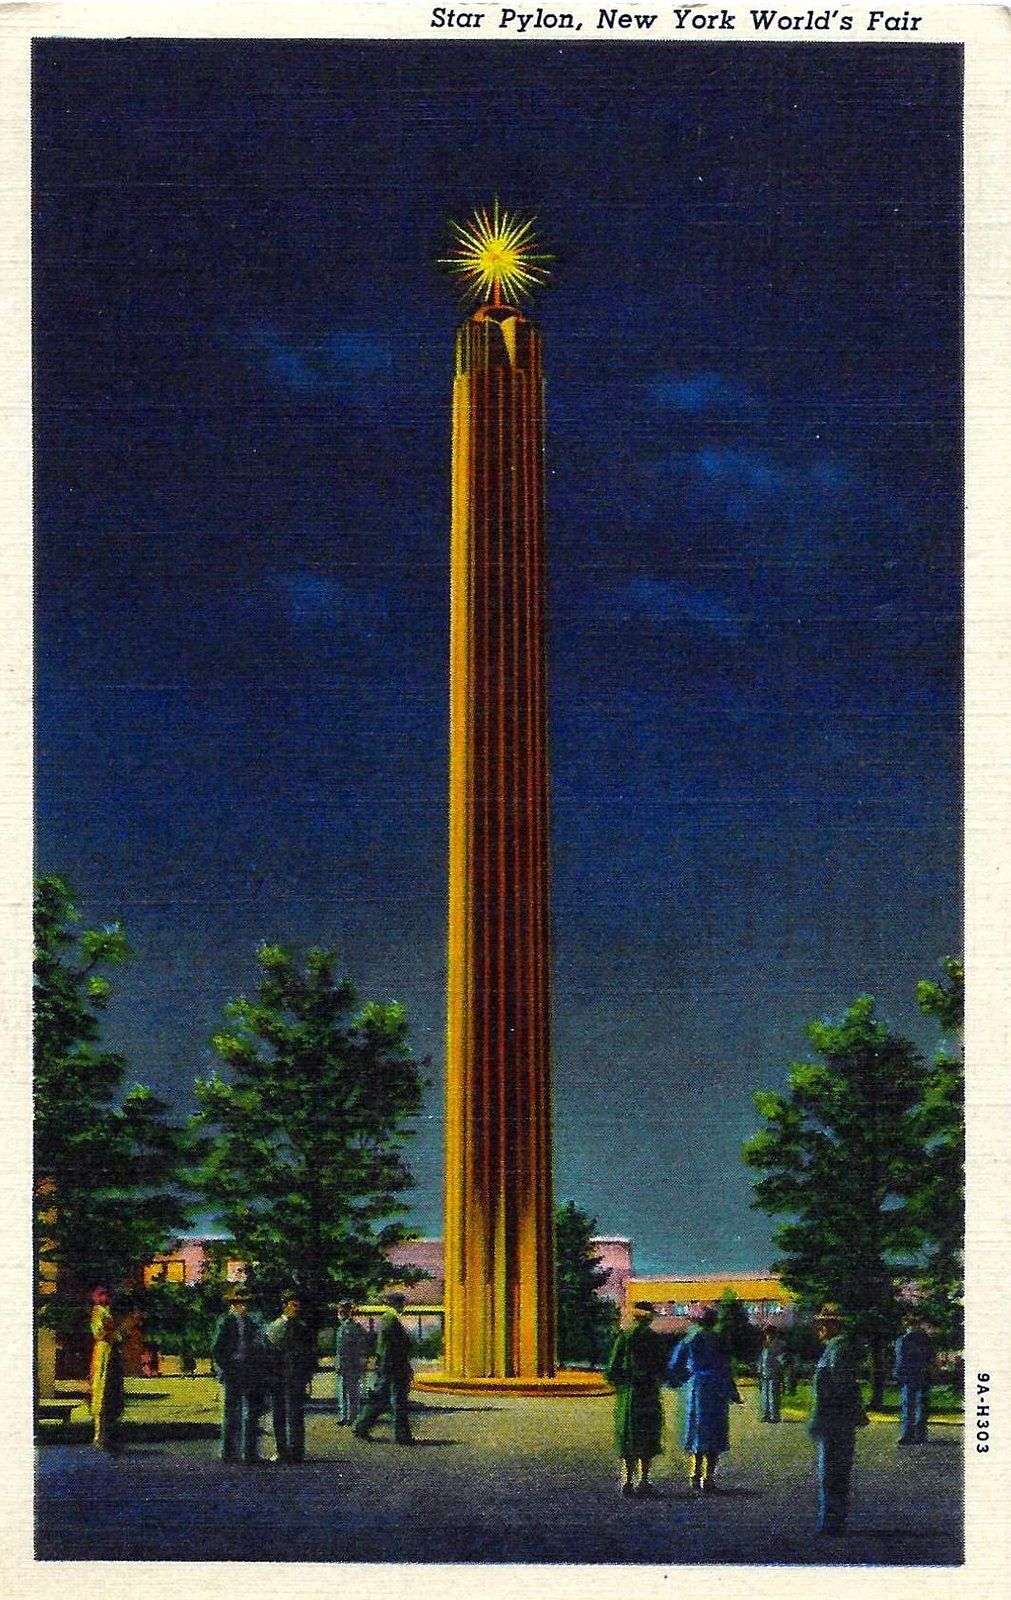 Vintage 1939 New York World's Fair Officially Approved